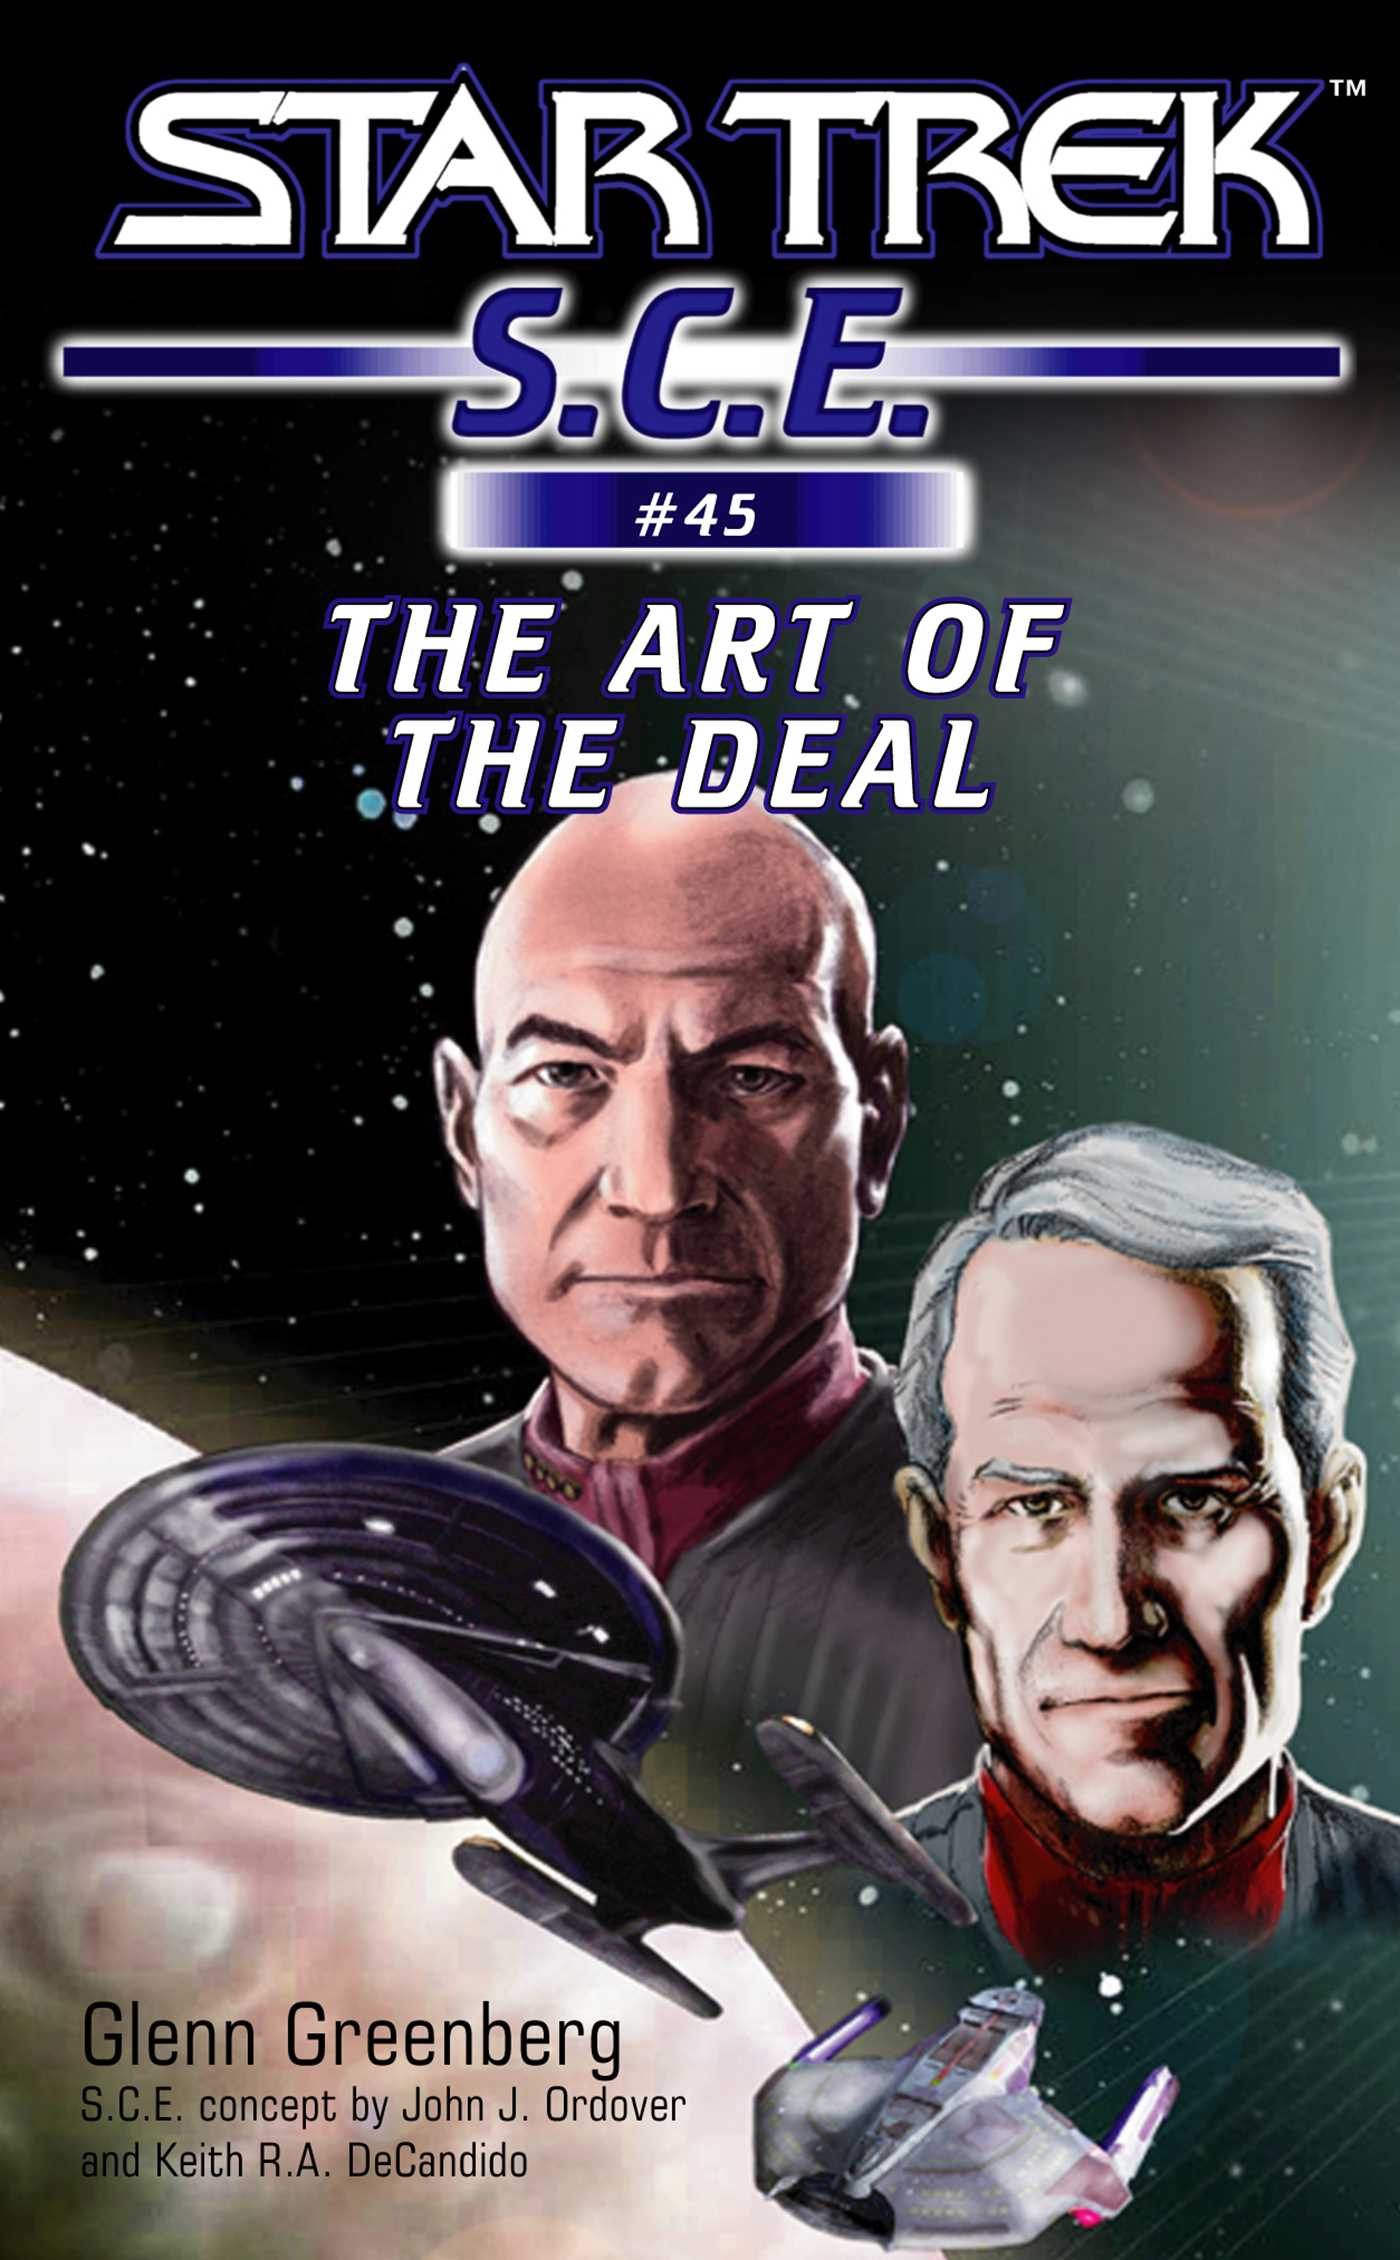 Star-trek-the-art-of-the-deal-9780743496865_hr